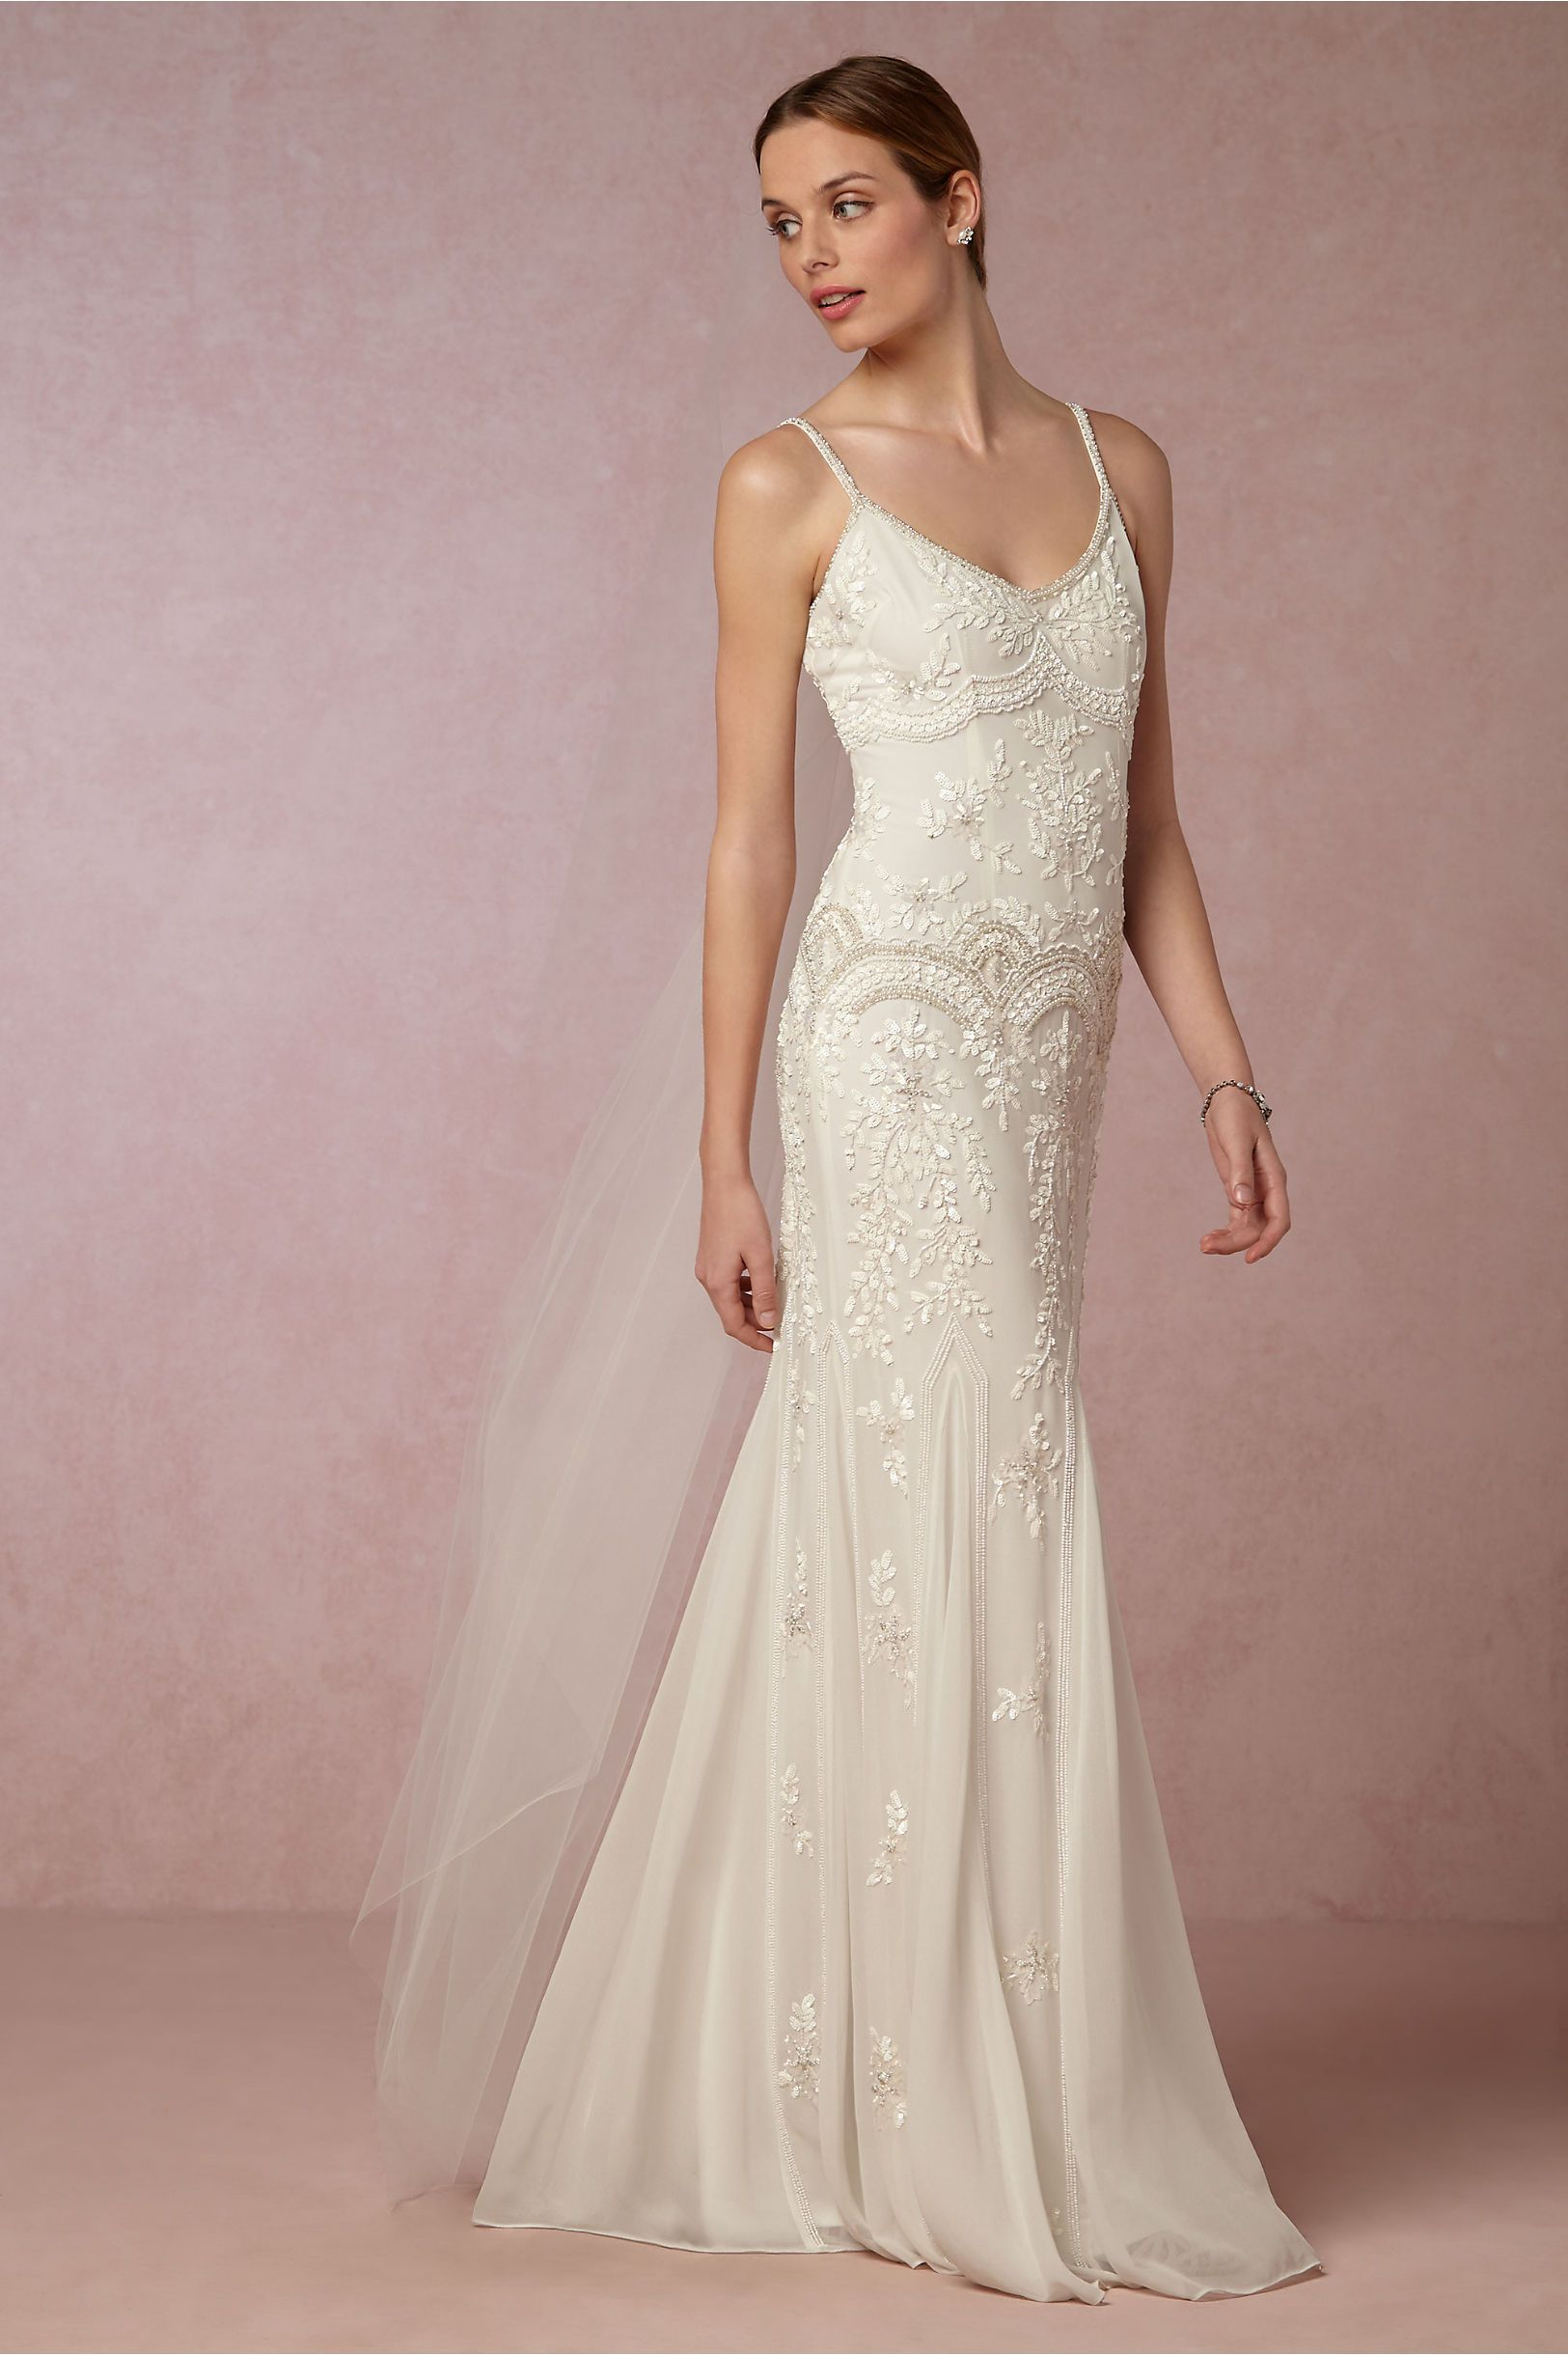 Embellished Sheath Wedding Dress Naomi Gown From Bhldn